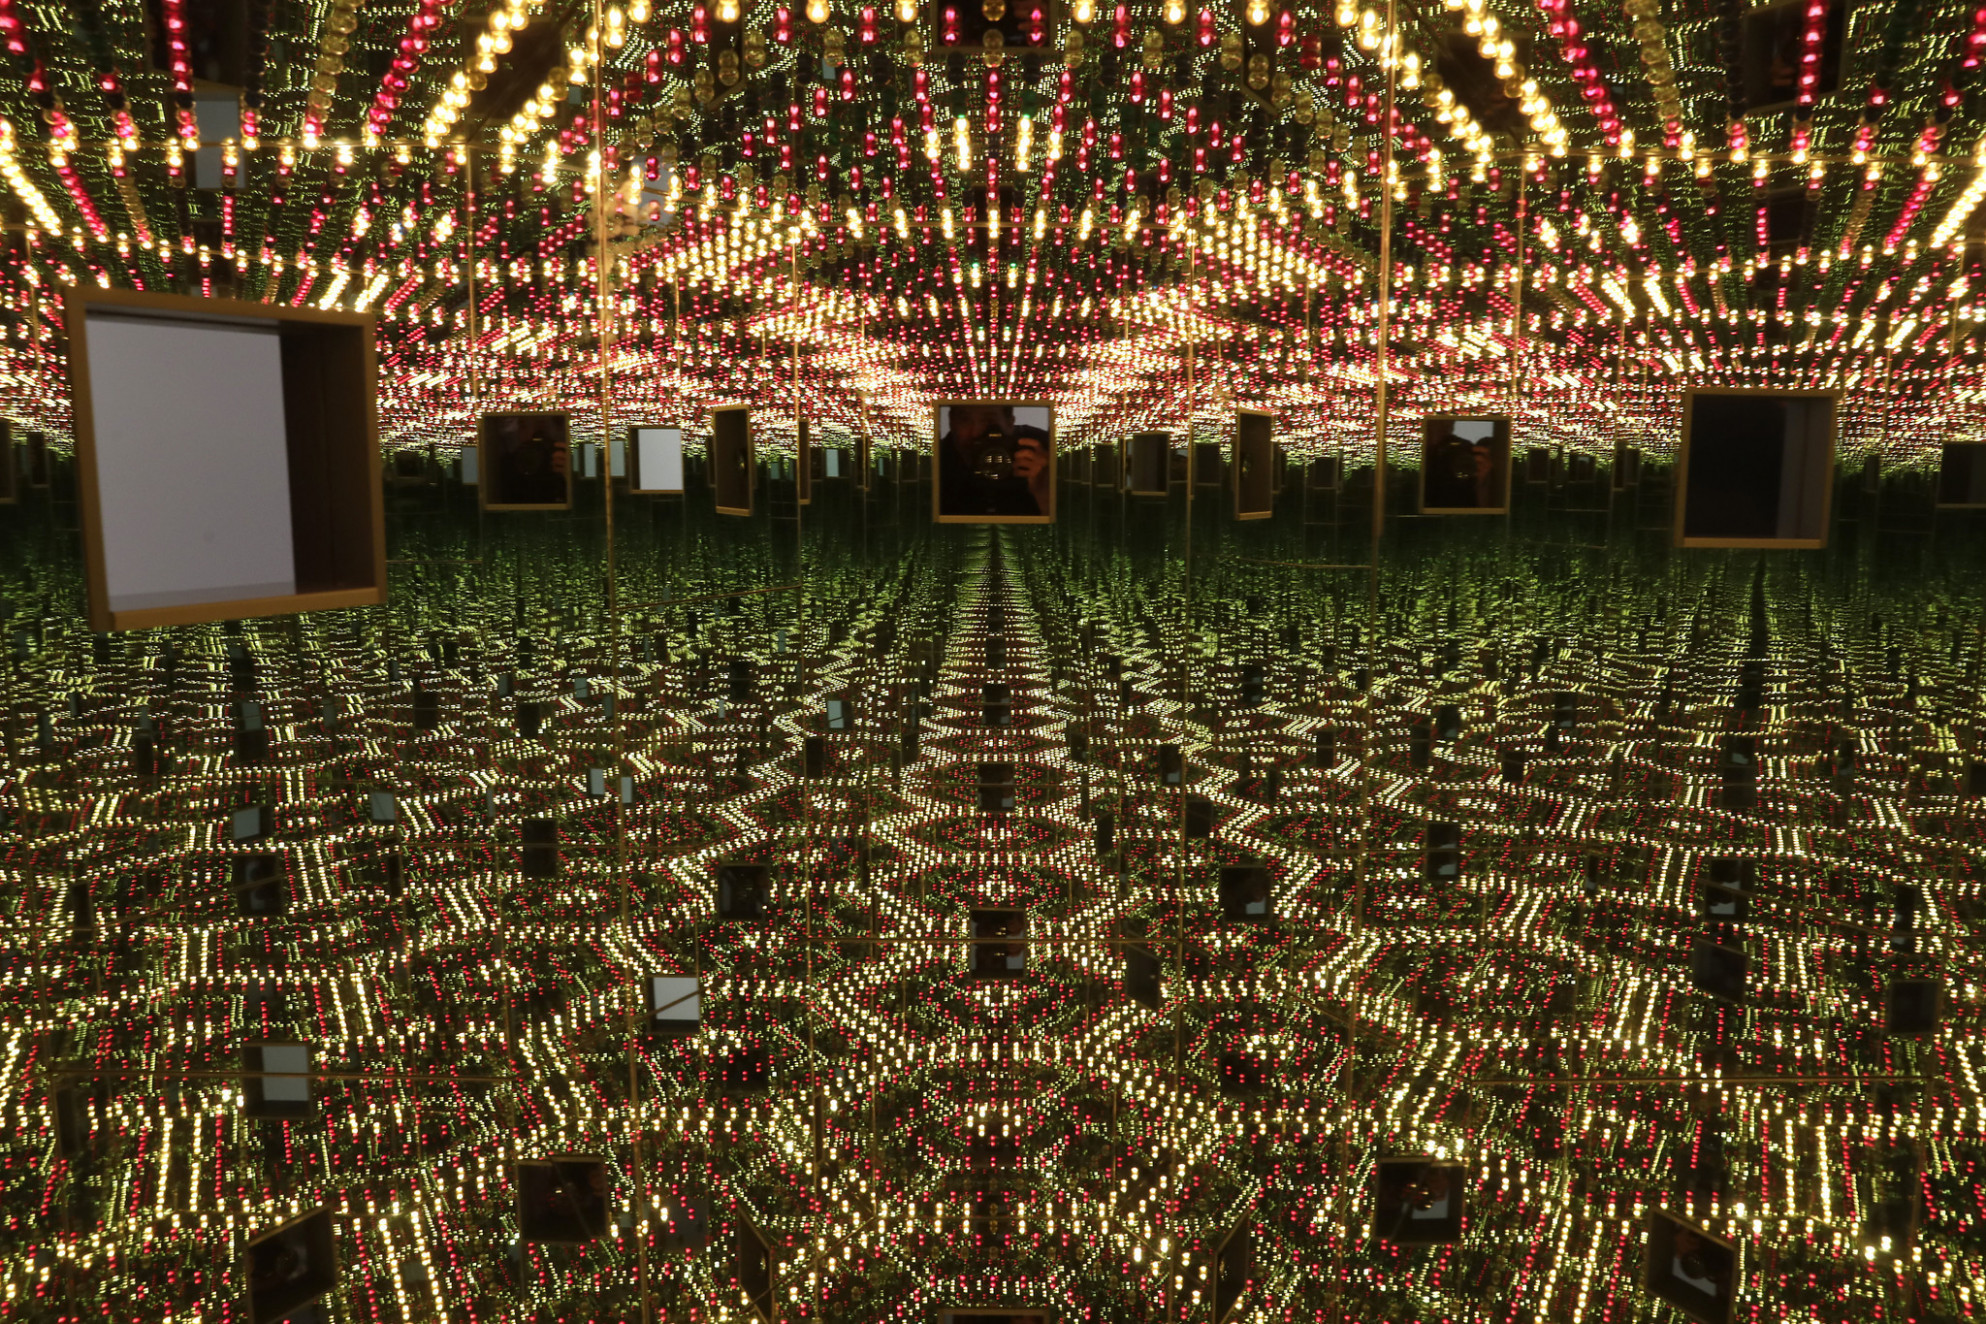 Yayoi Kusama at the Broad: Lots of mirrors, not so much artistic ...